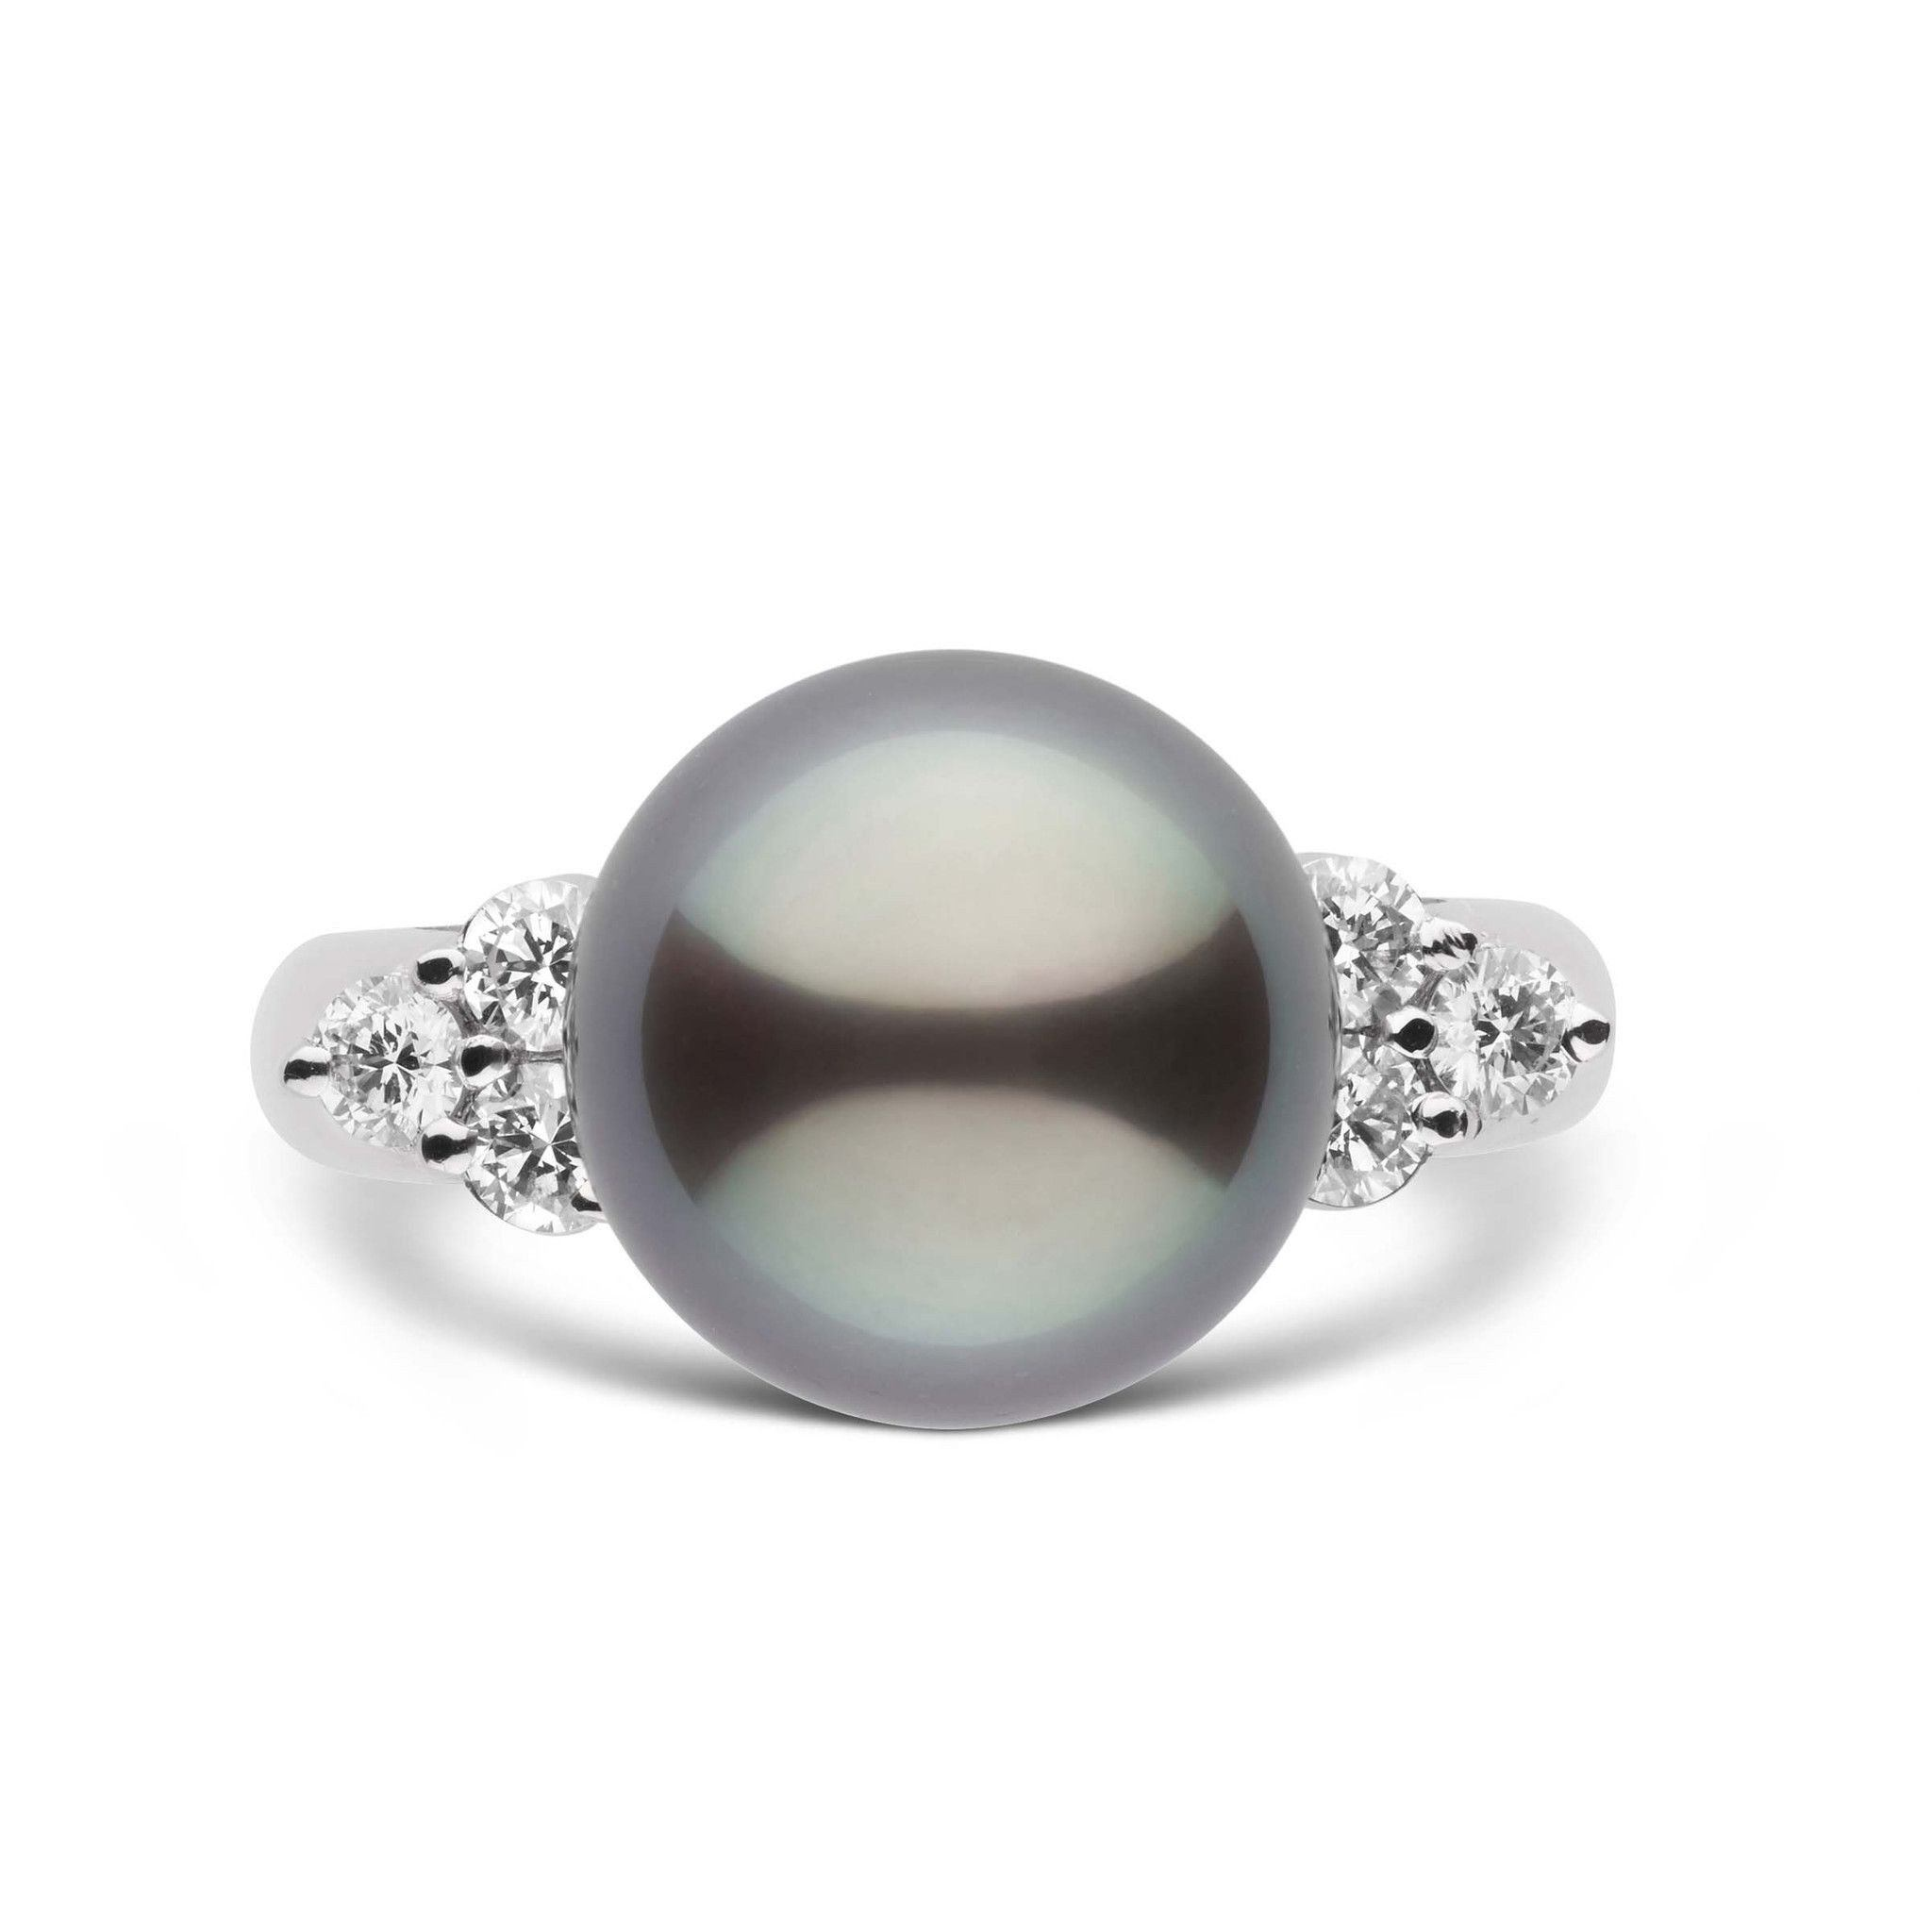 Always Collection 11.0-12.0 mm Tahitian Pearl and Diamond Ring 18K